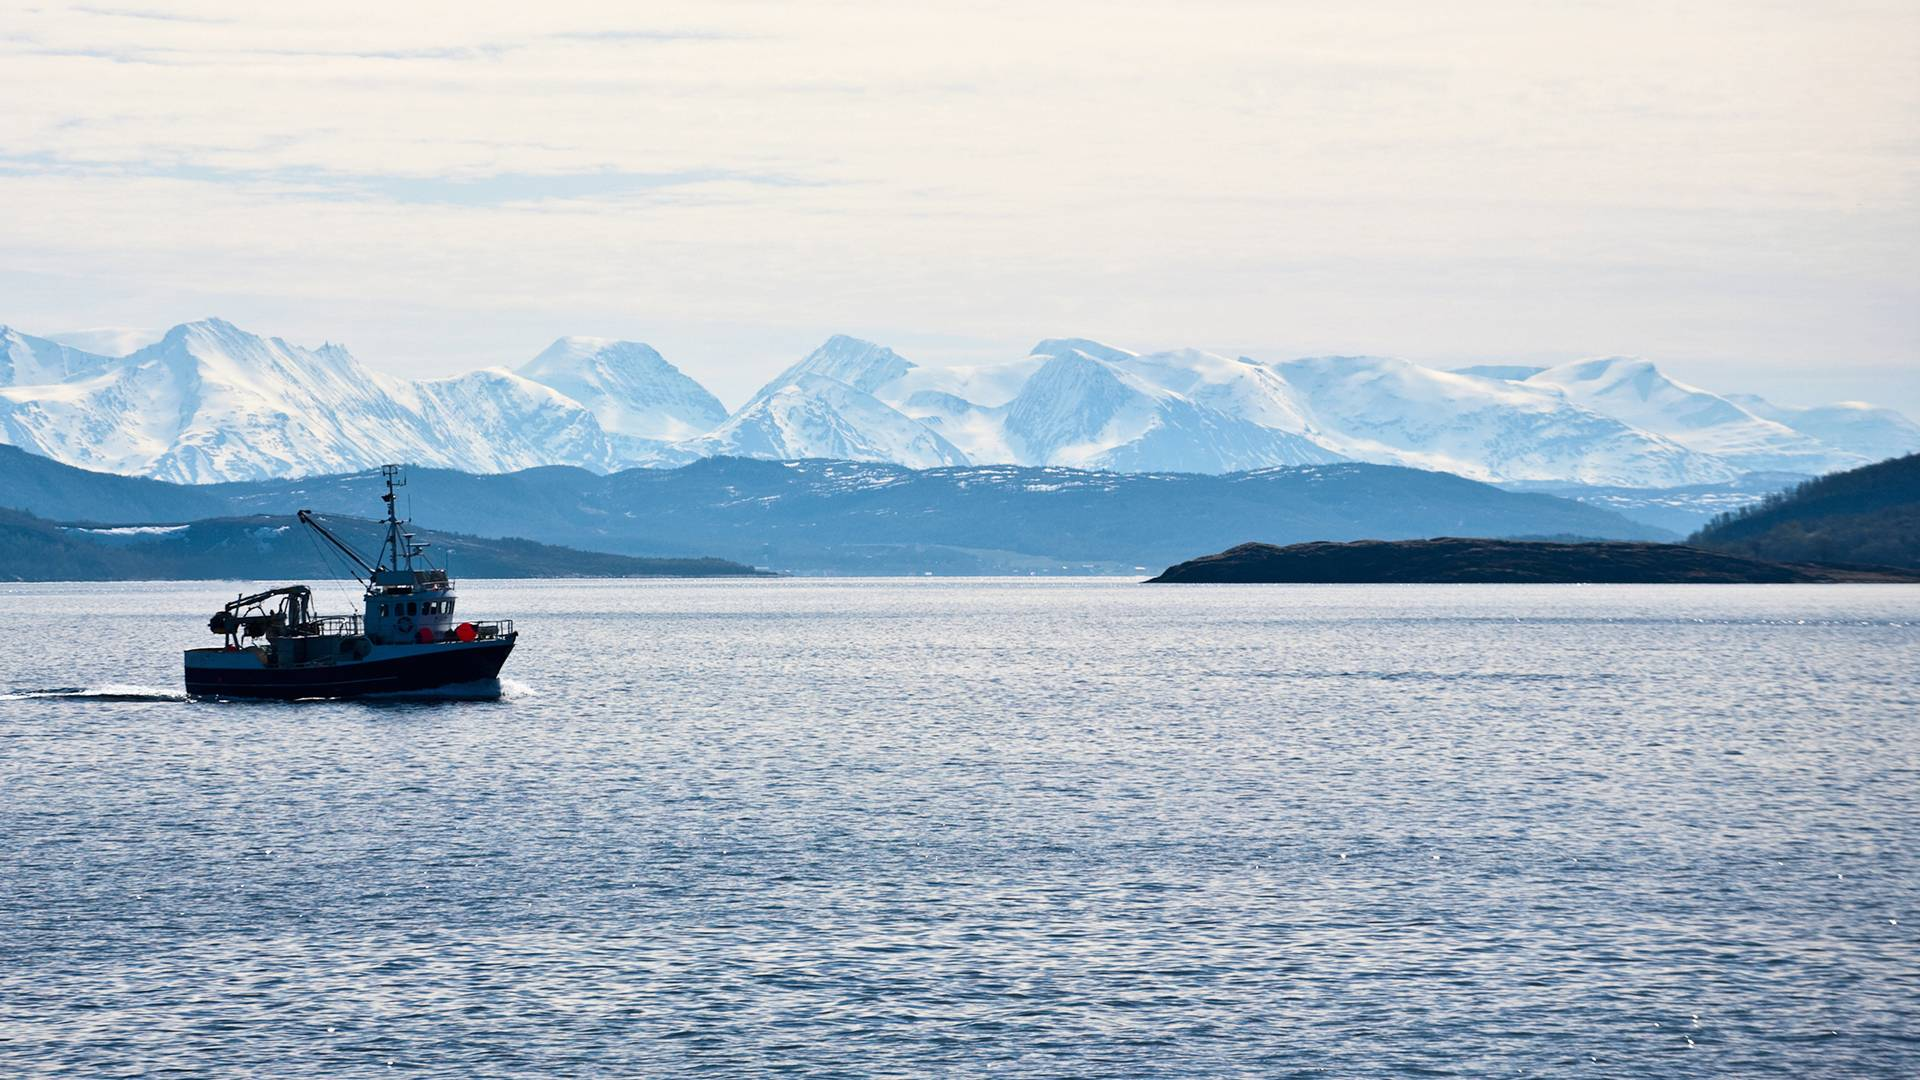 A boat in the middle of the sea with icy mountains